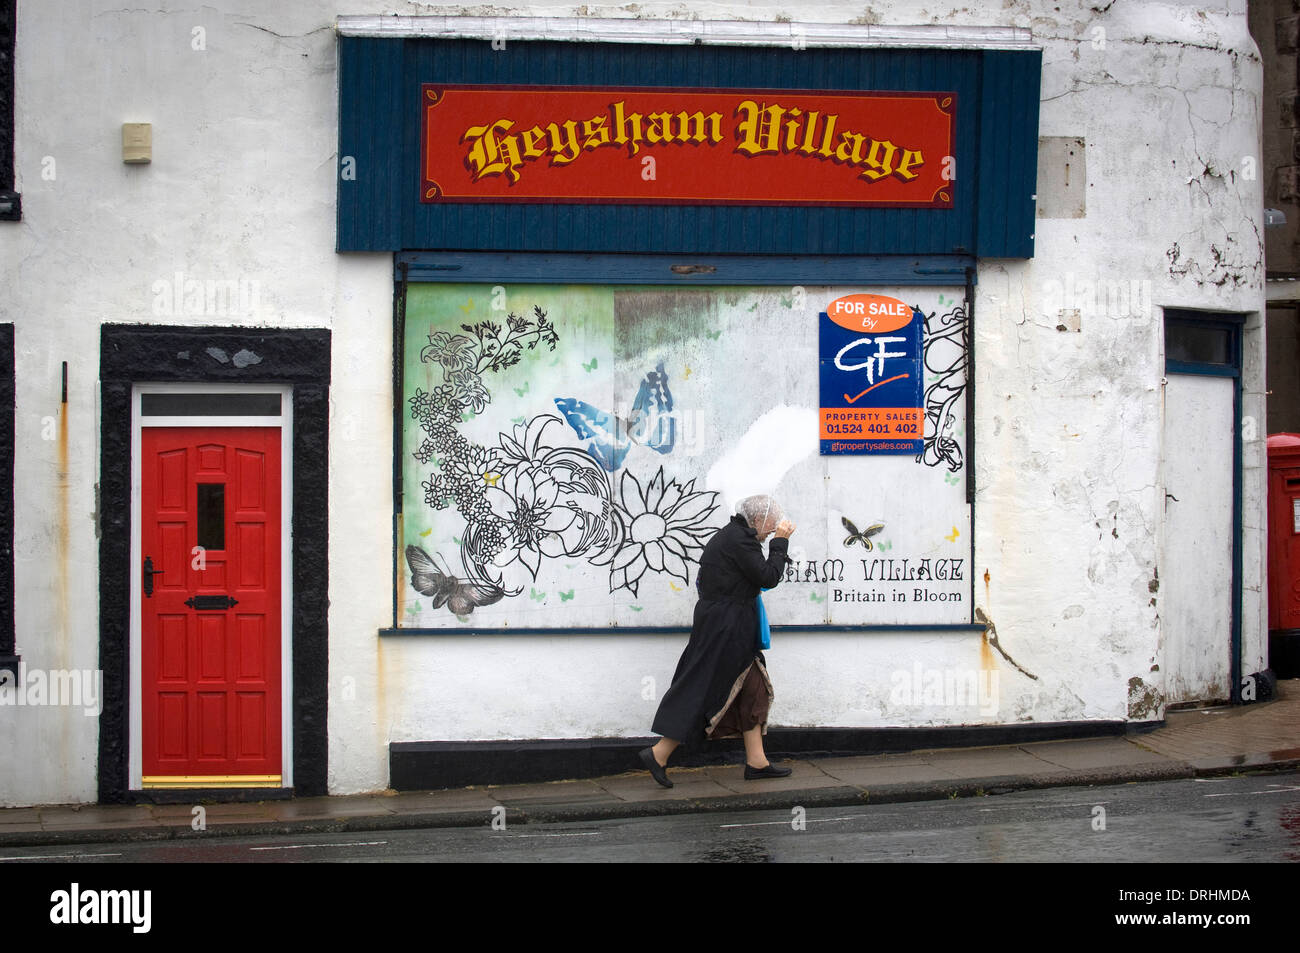 Experiencing British summertime at Heysham Village near Morecambe,Lancashire,UK. Stock Photo